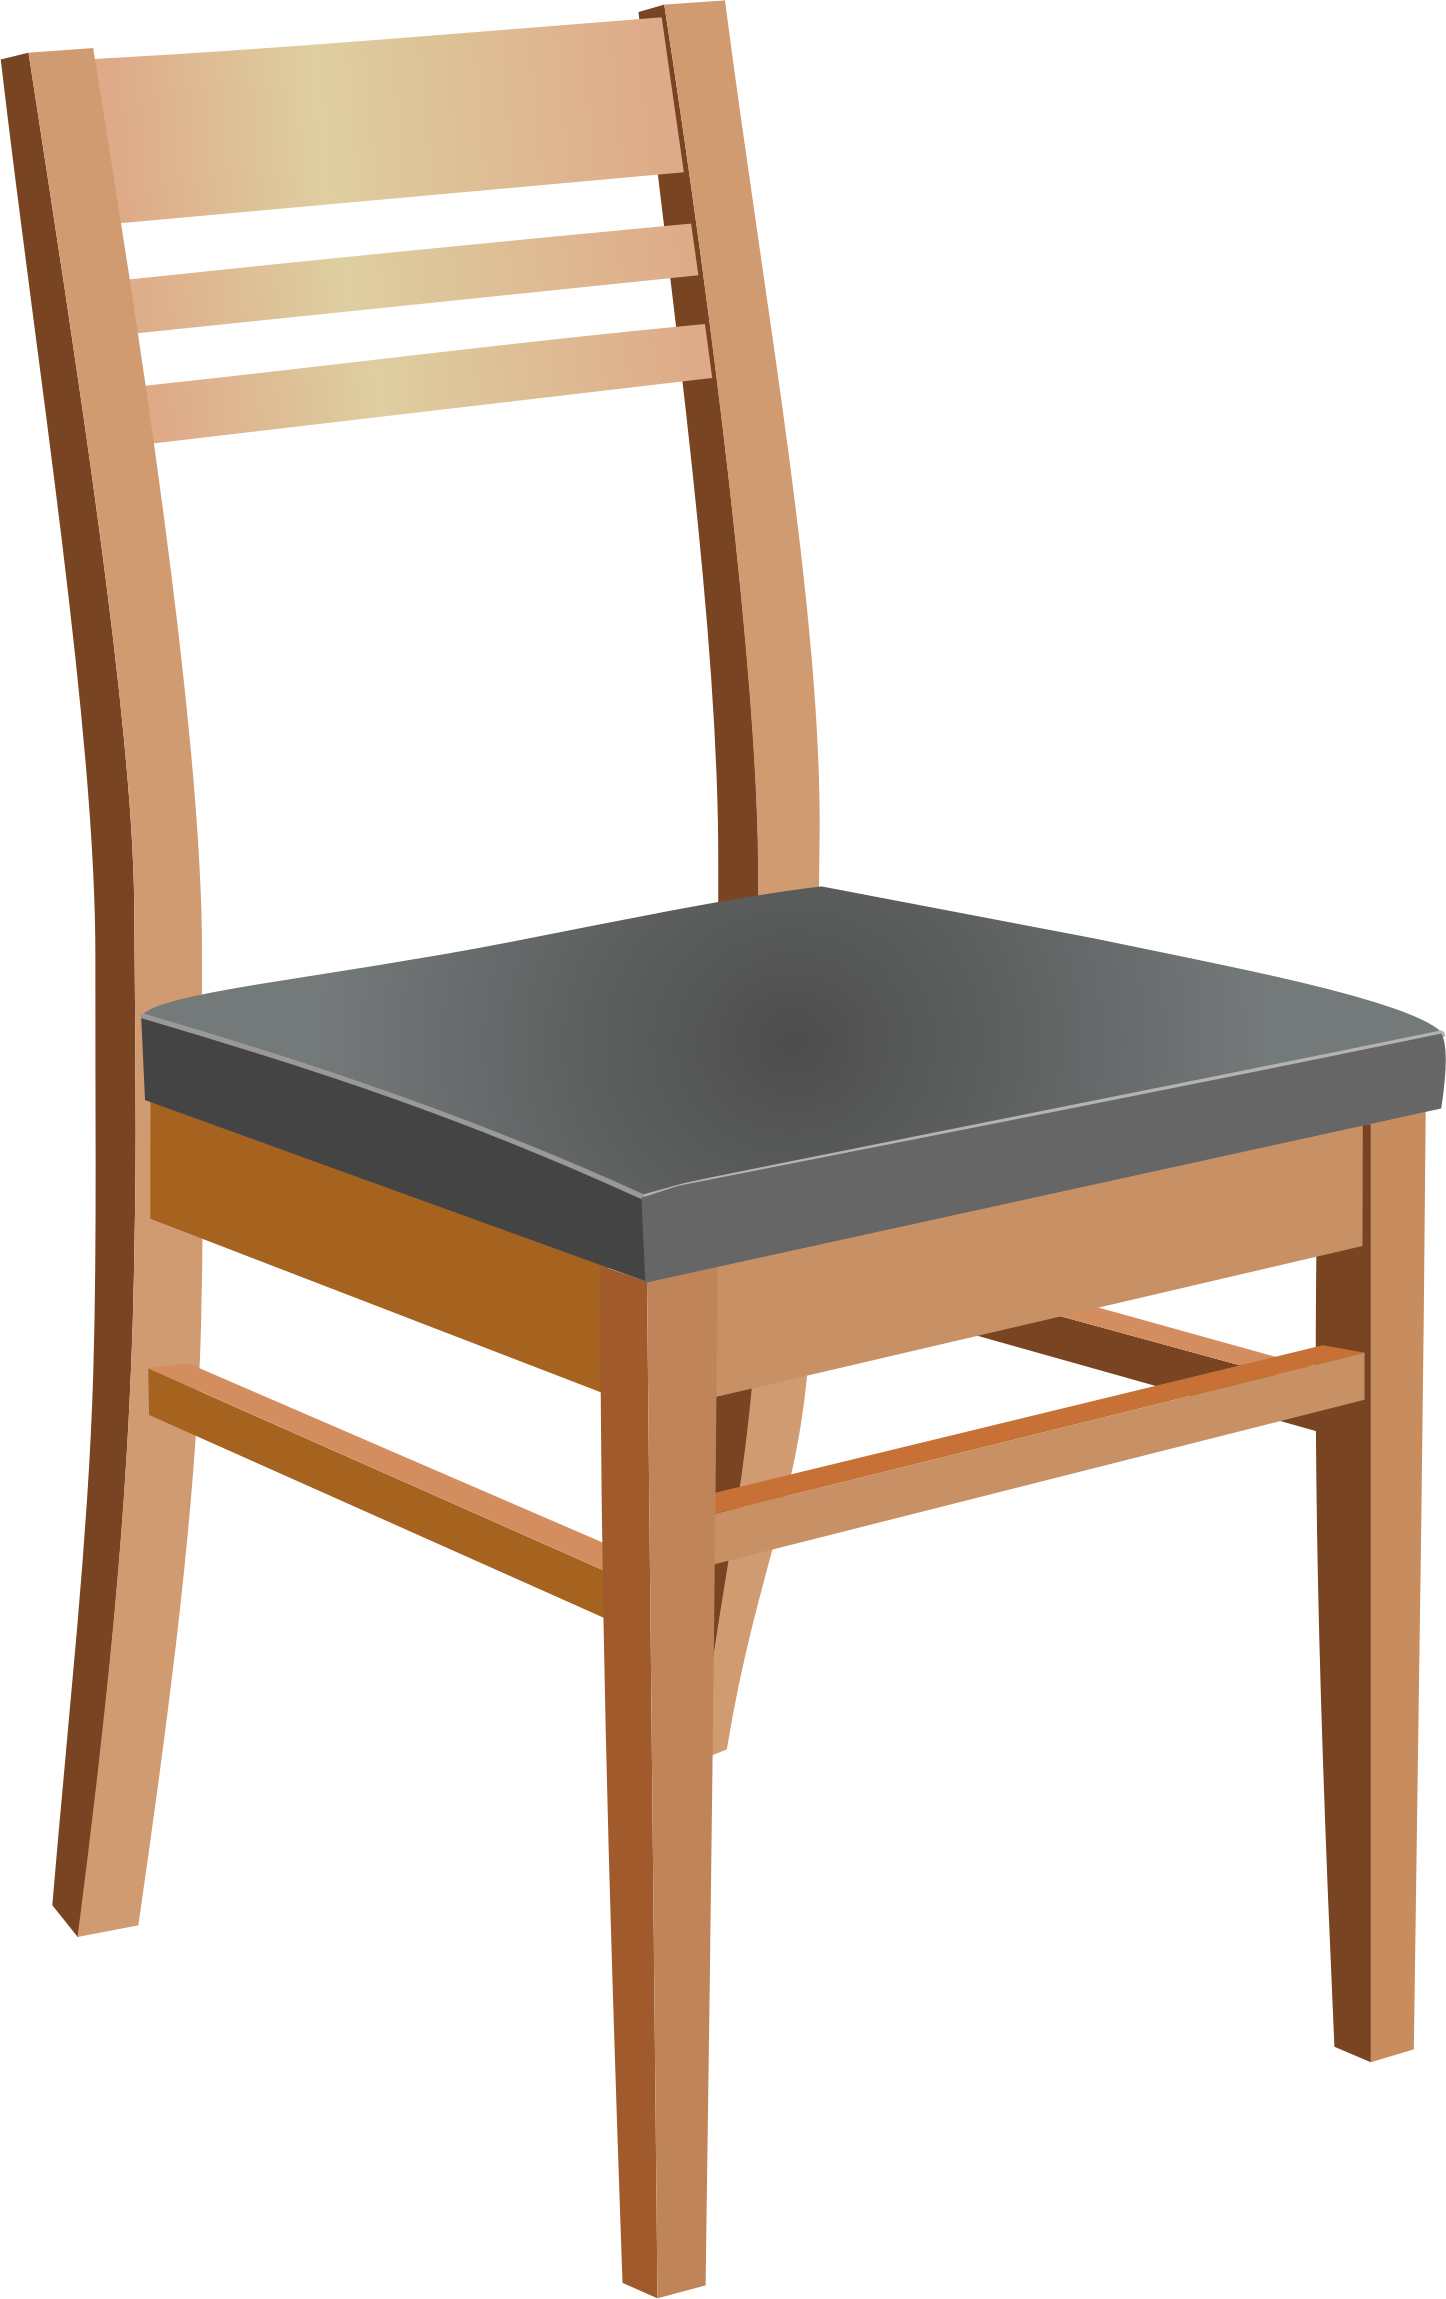 Chair clipart photo png royalty free Free Chair Cliparts, Download Free Clip Art, Free Clip Art on ... png royalty free